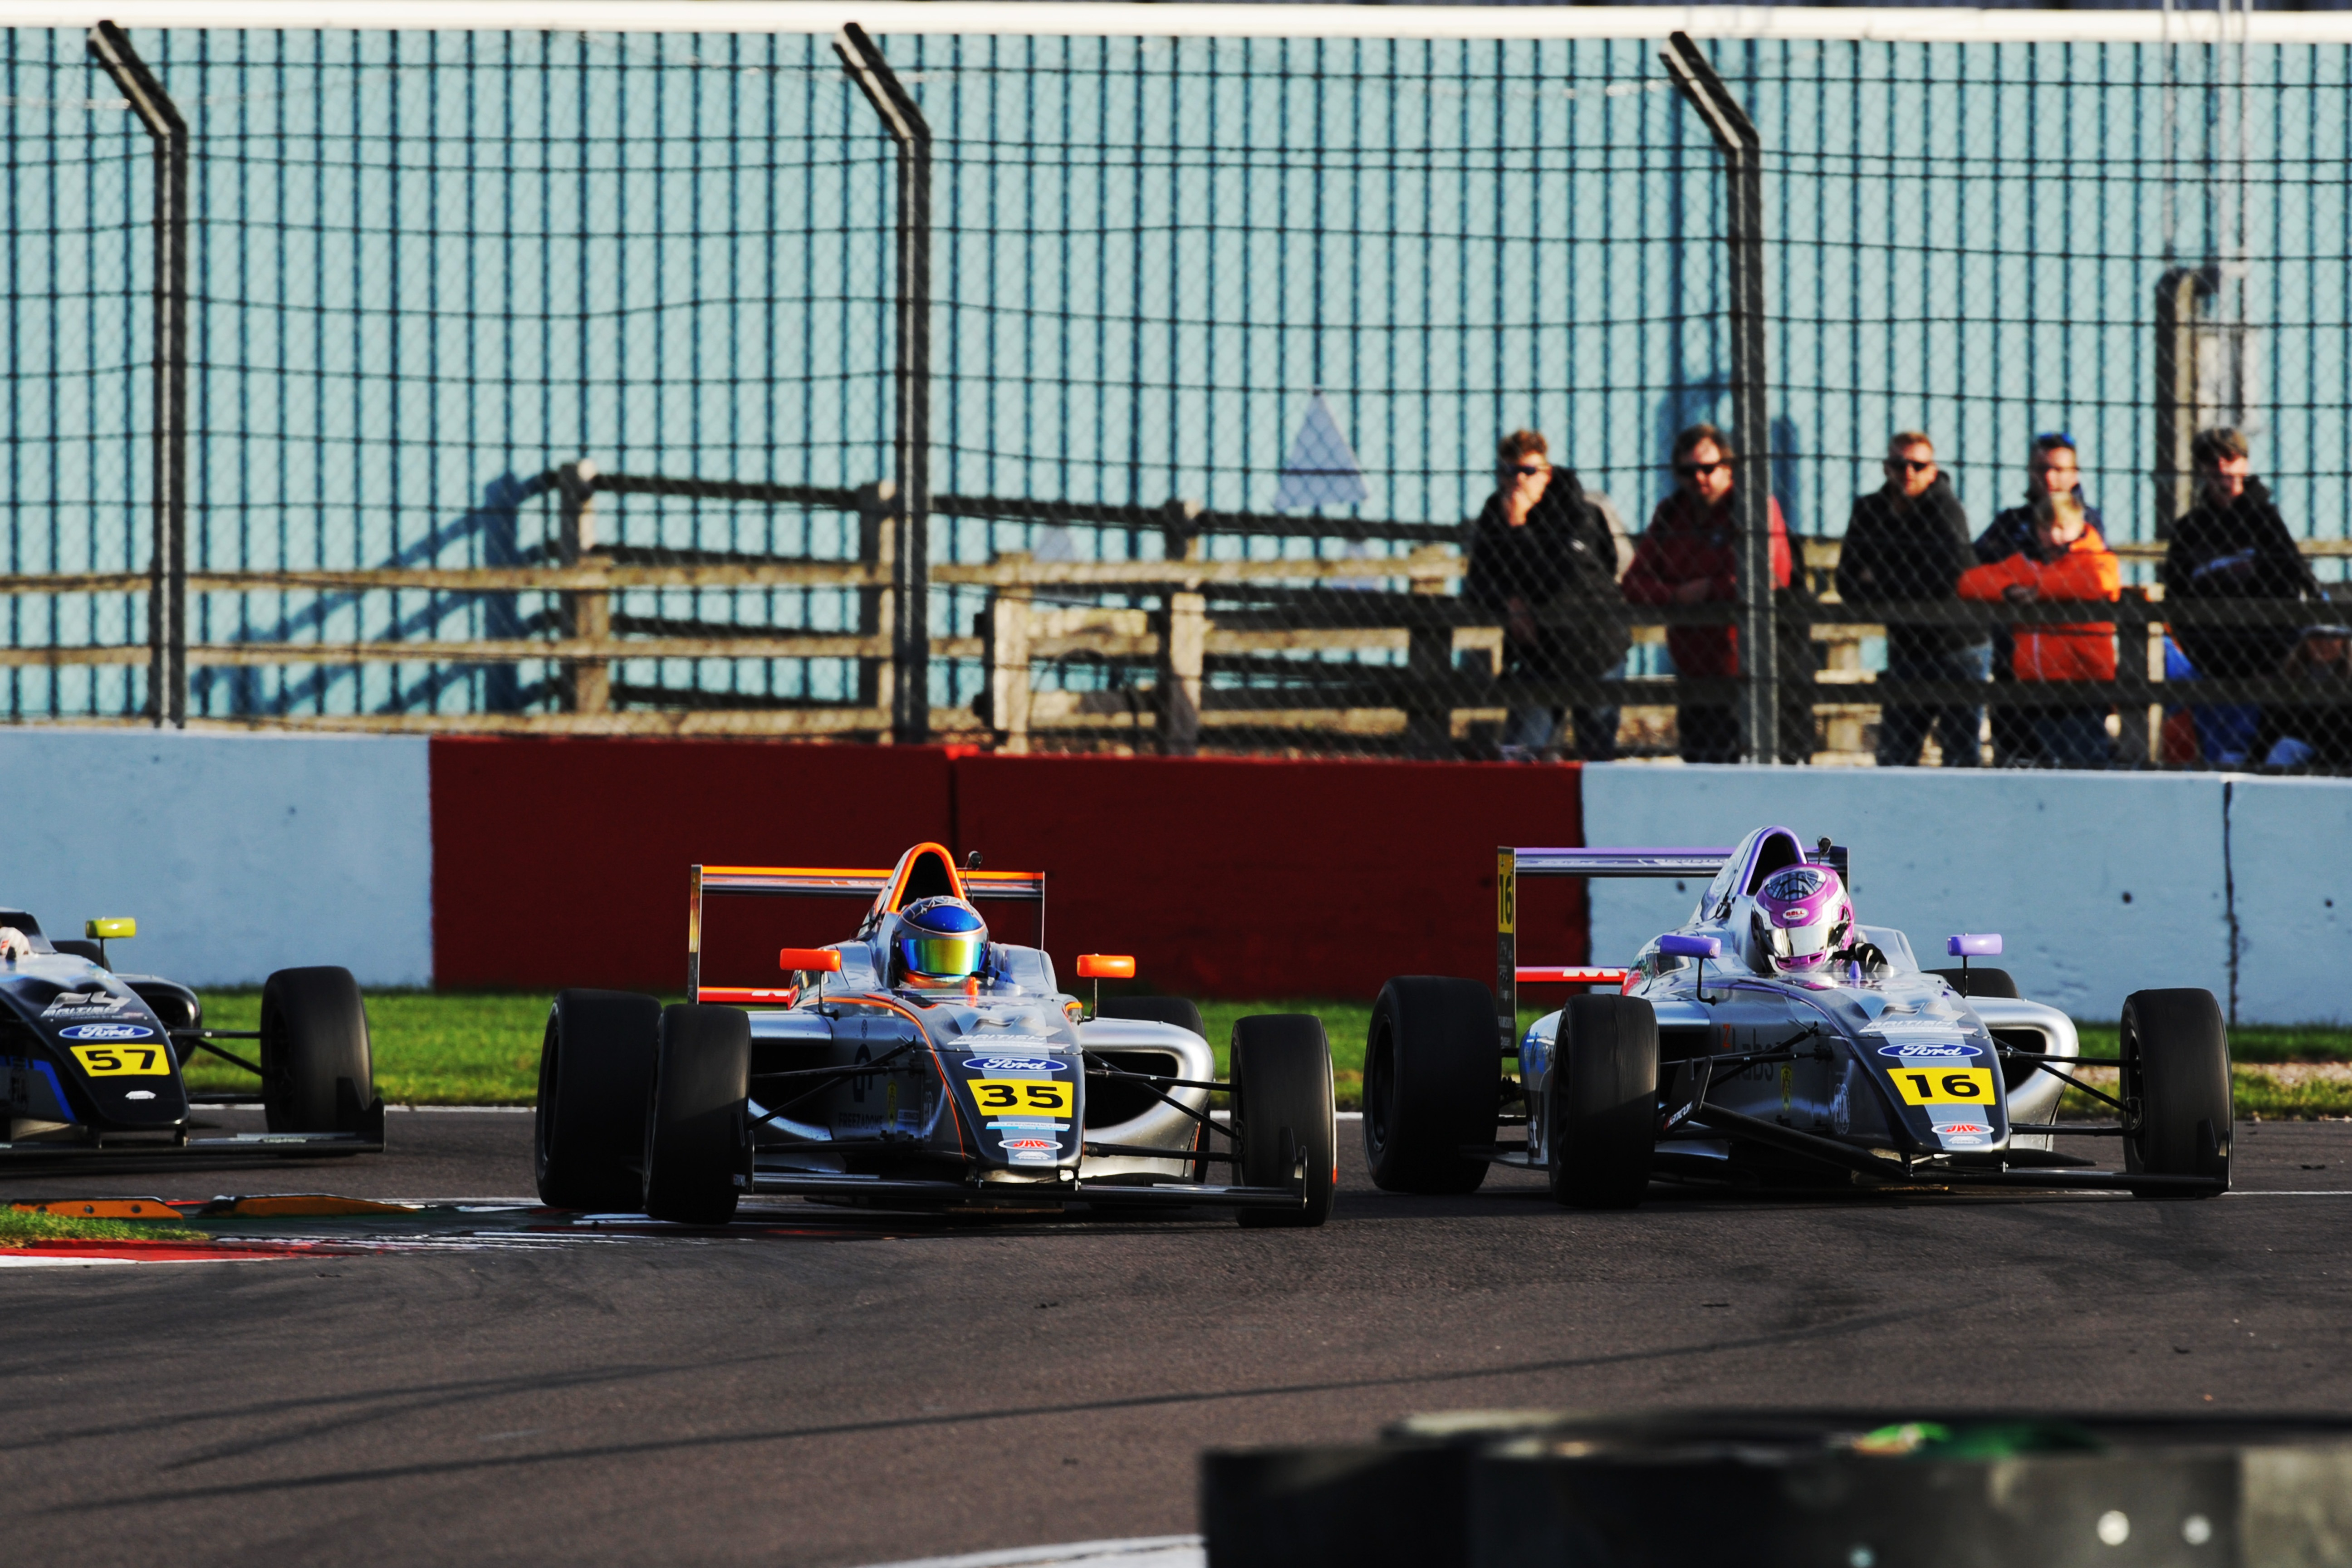 Rees (l) battles JHR team-mate Cresswell en route to British F4 victory